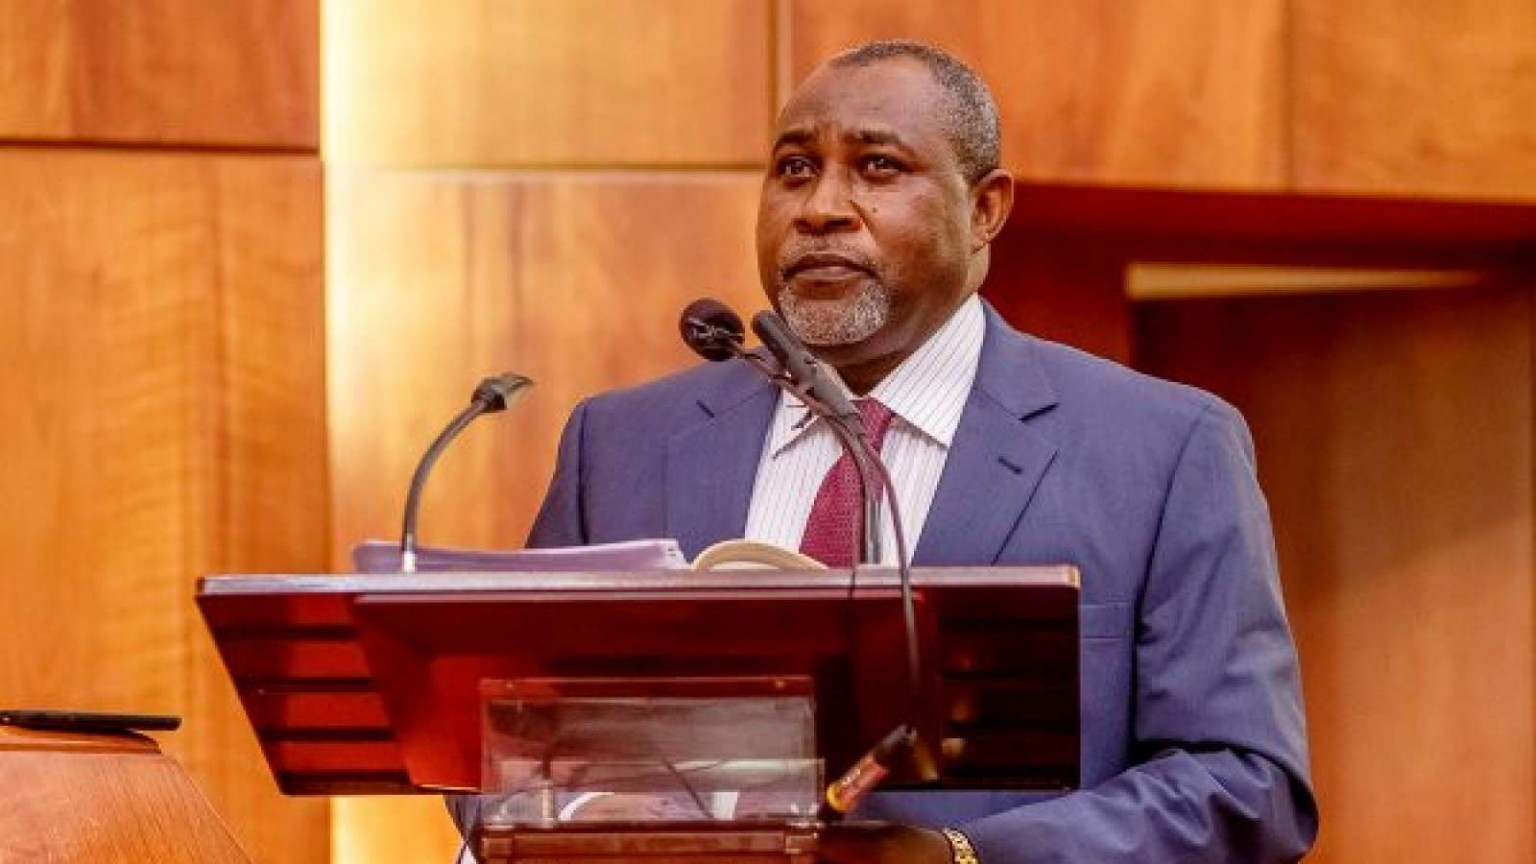 BODIES OF LATE MINISTER, JAMES OCHOLI, HIS WIFE AND SON